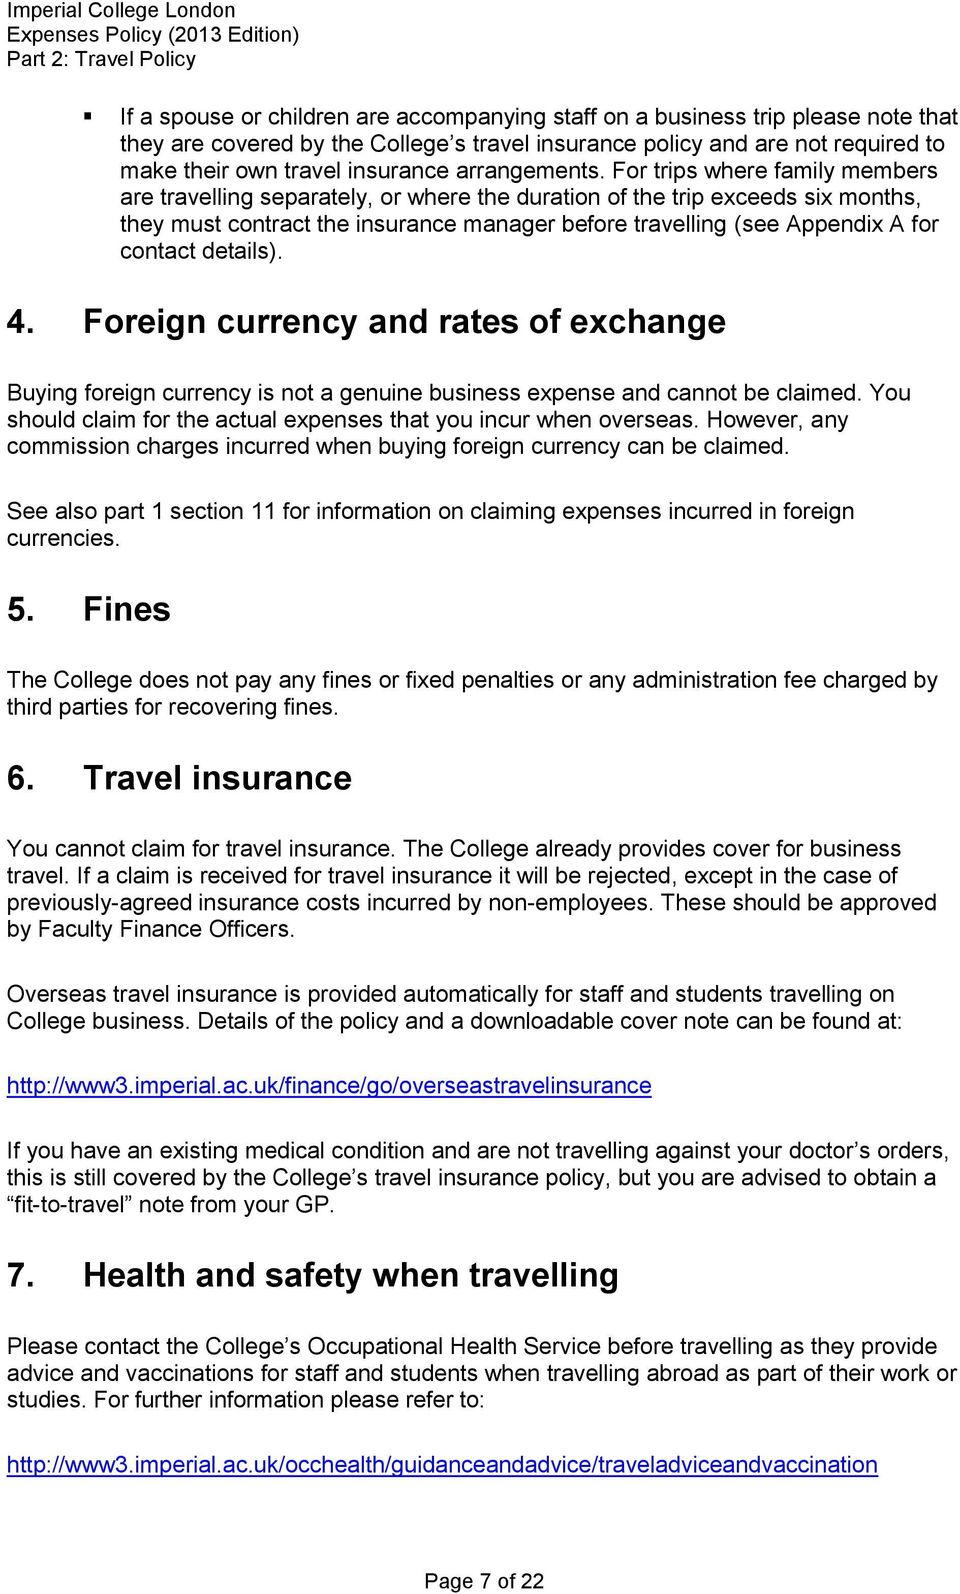 For trips where family members are travelling separately, or where the duration of the trip exceeds six months, they must contract the insurance manager before travelling (see Appendix A for contact